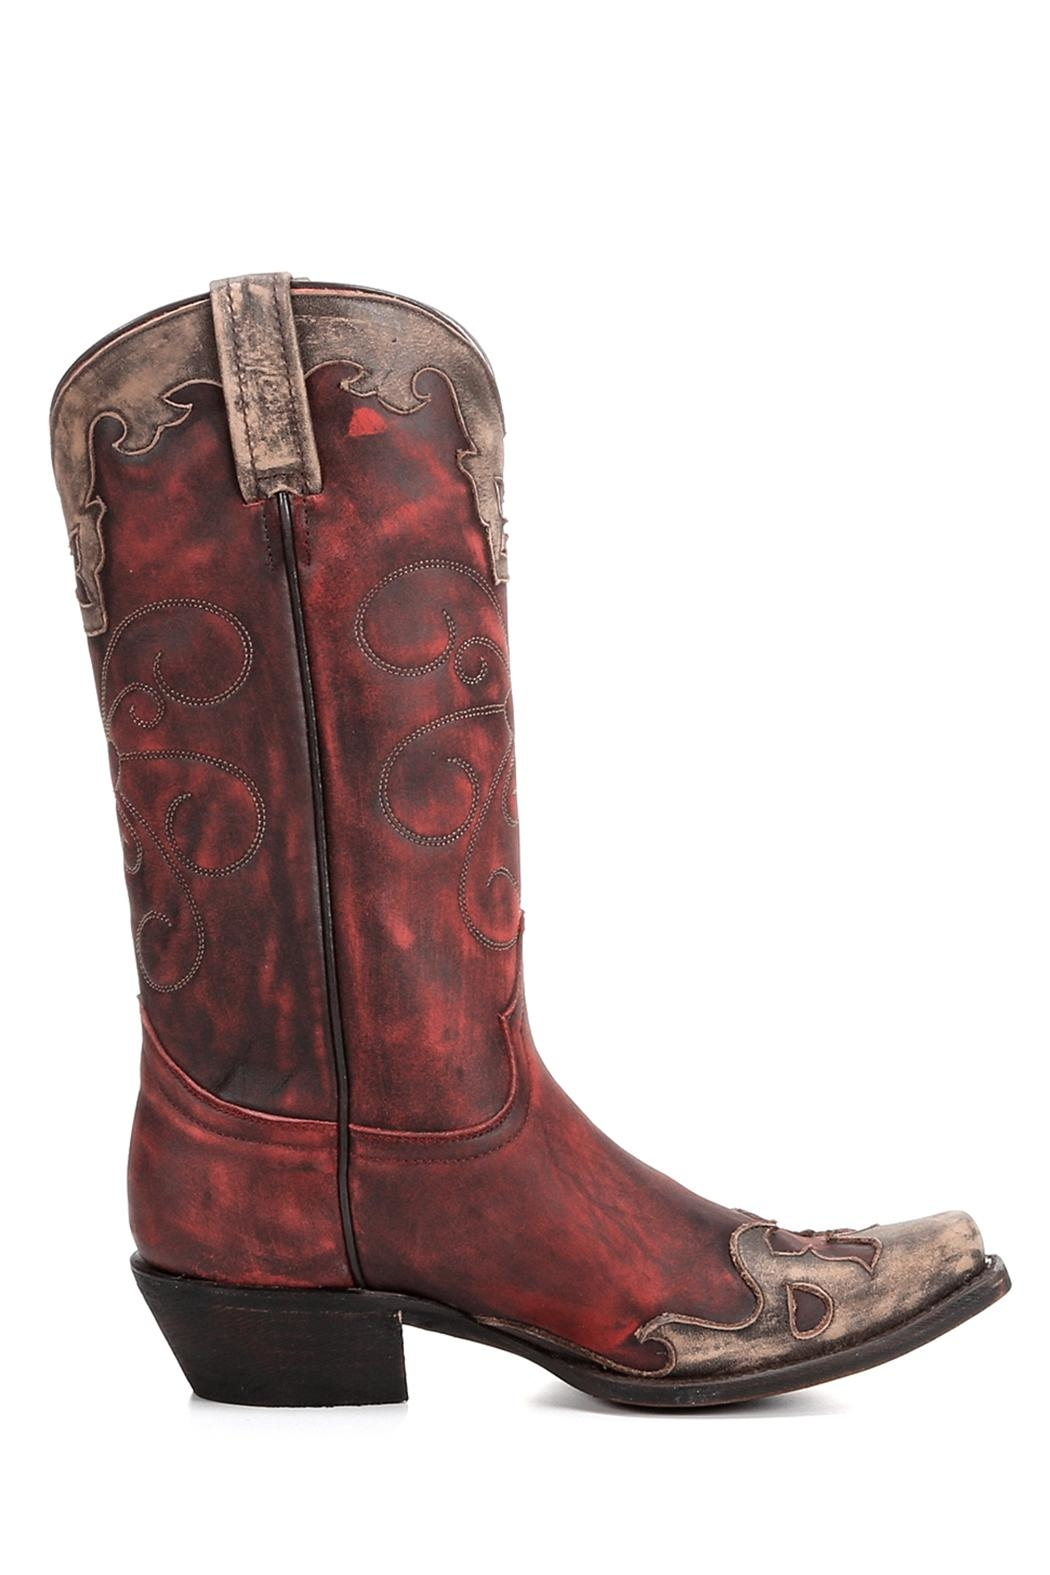 American Rebel Boot Company Women's Nikki Boots - Side Cropped Image